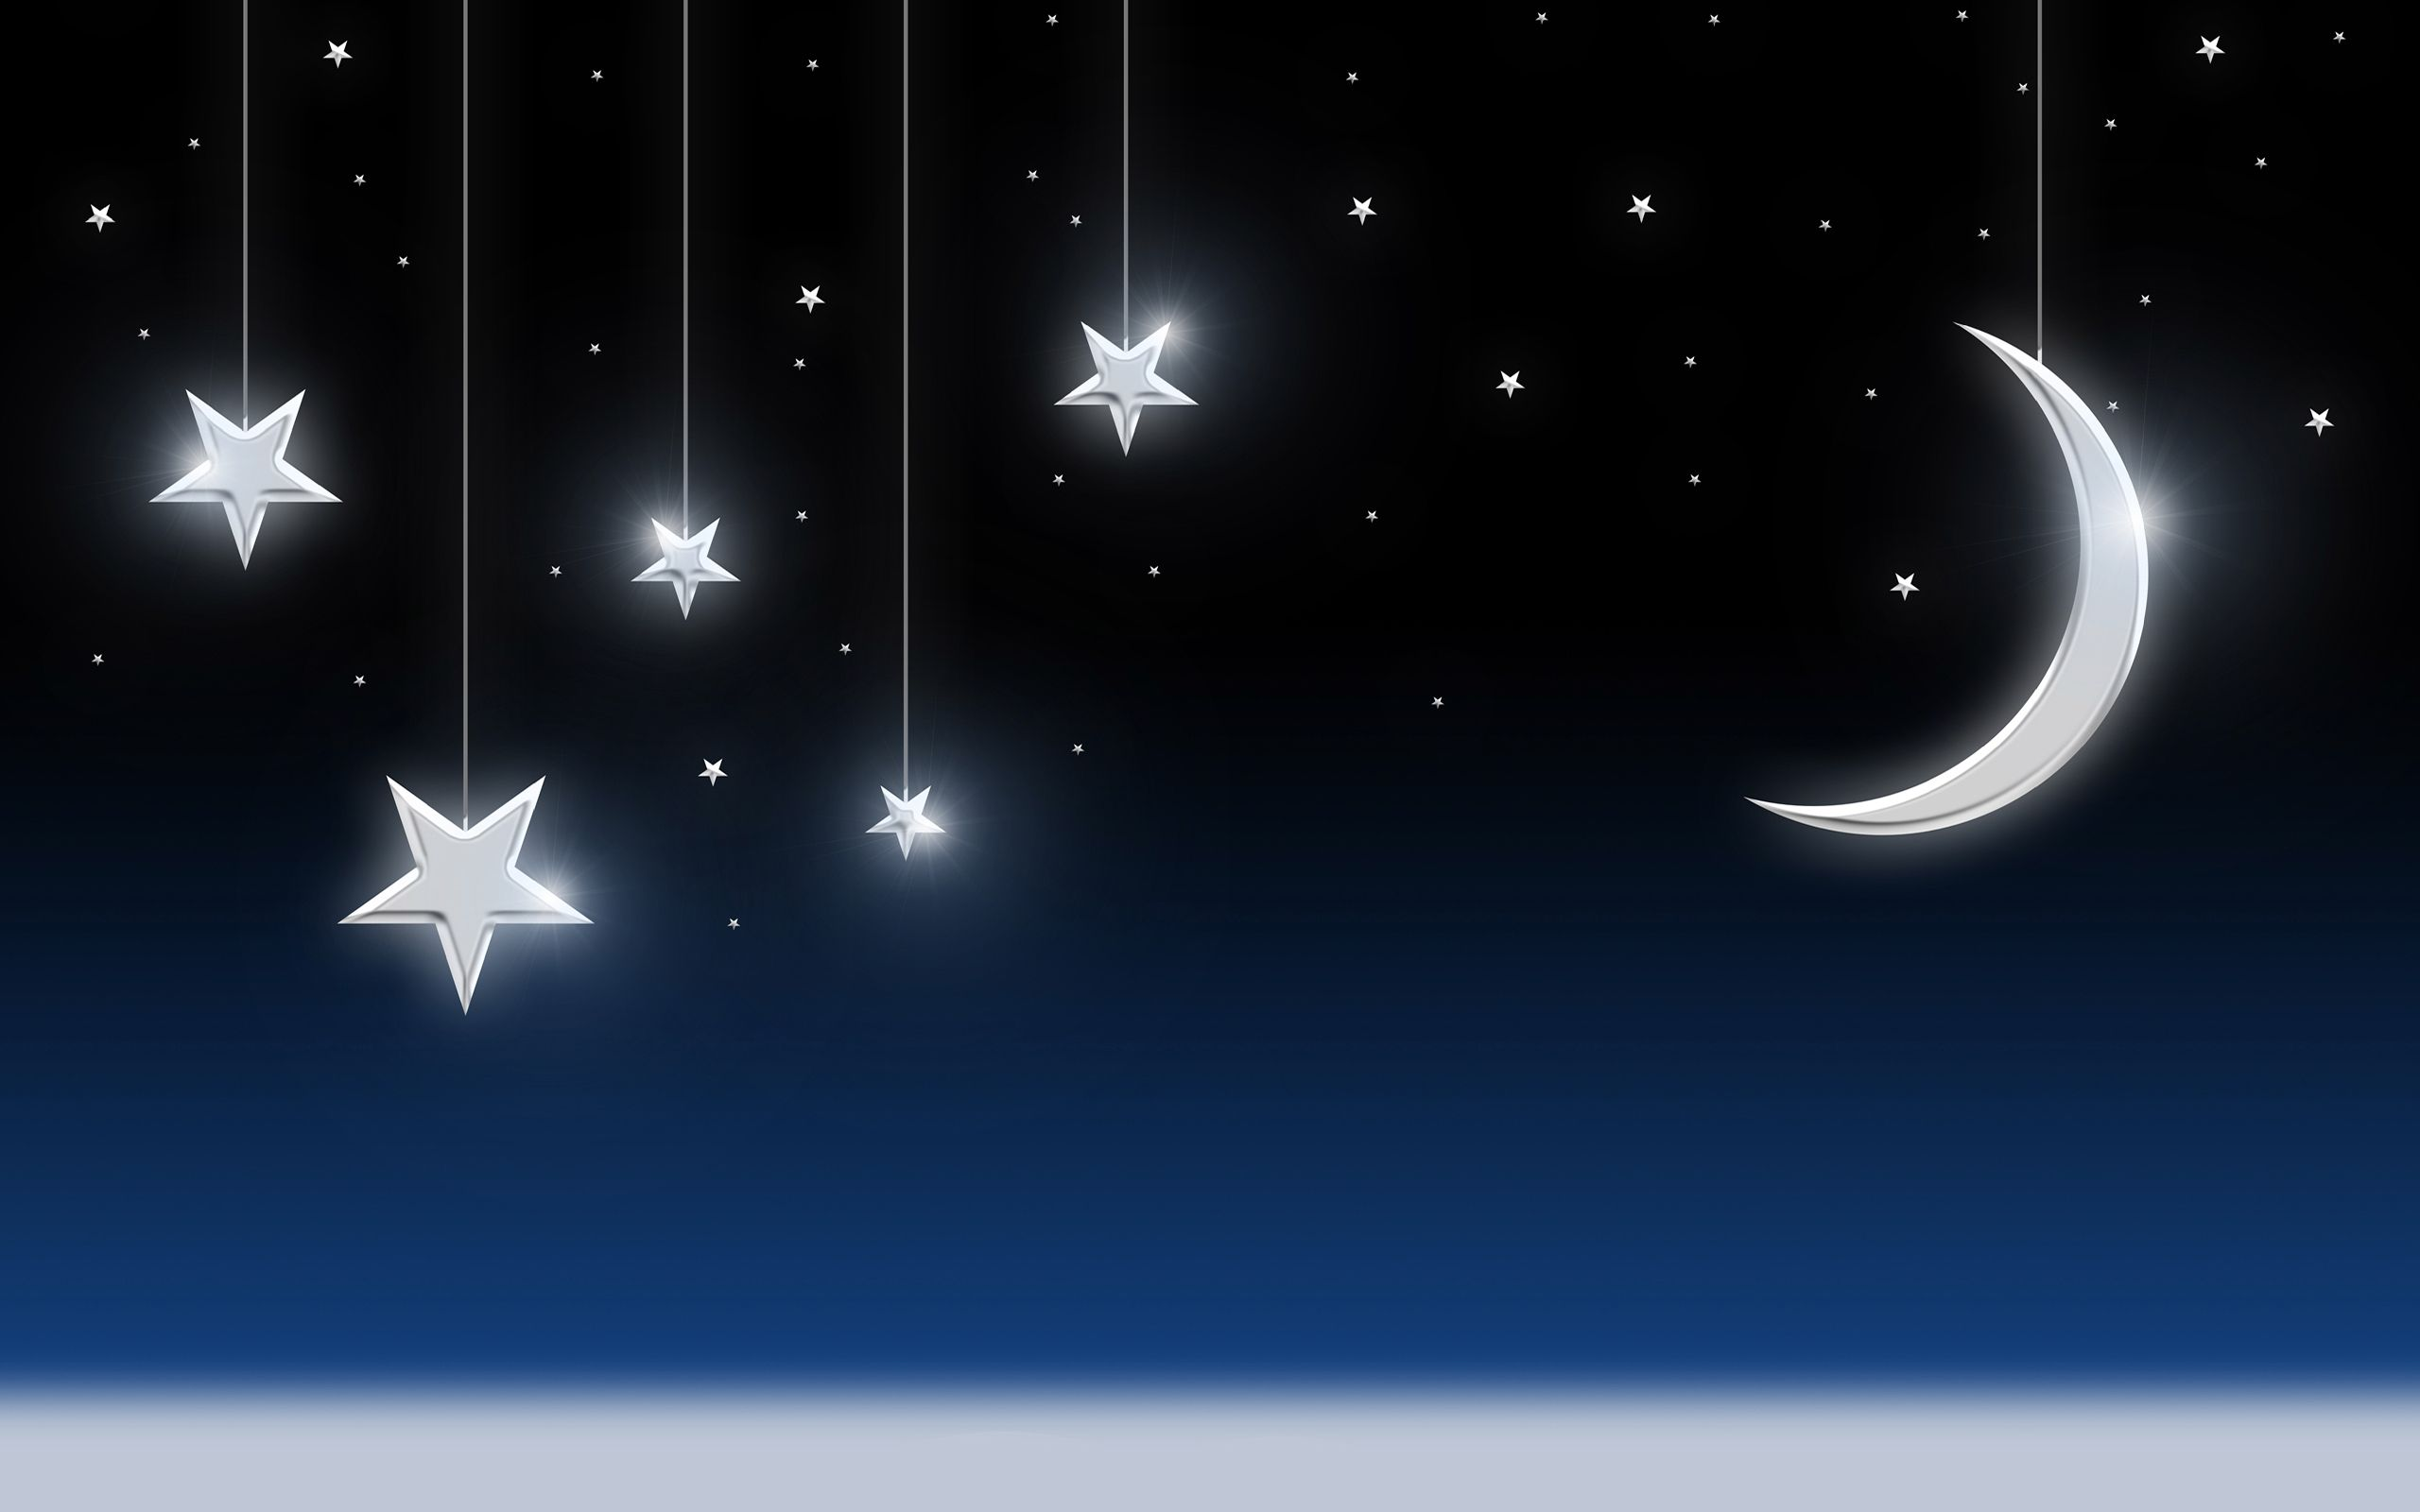 Wallpaper With Stars